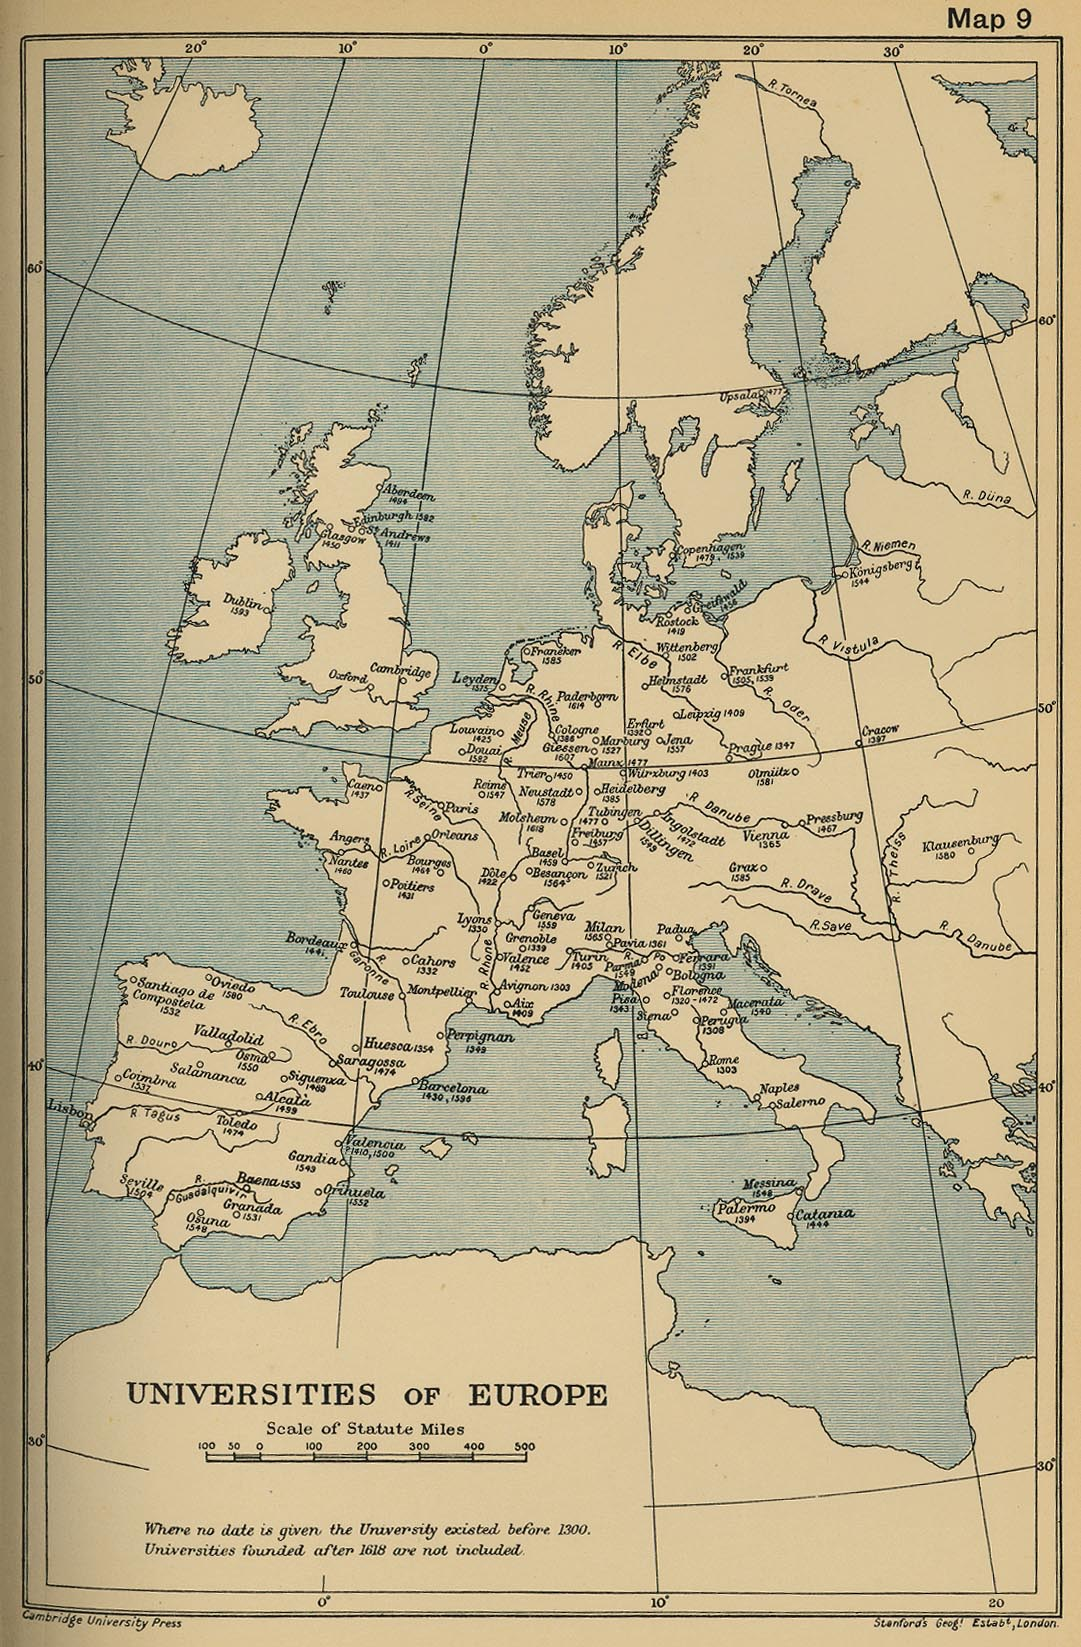 Universities of Europe Historical Map Europe mappery